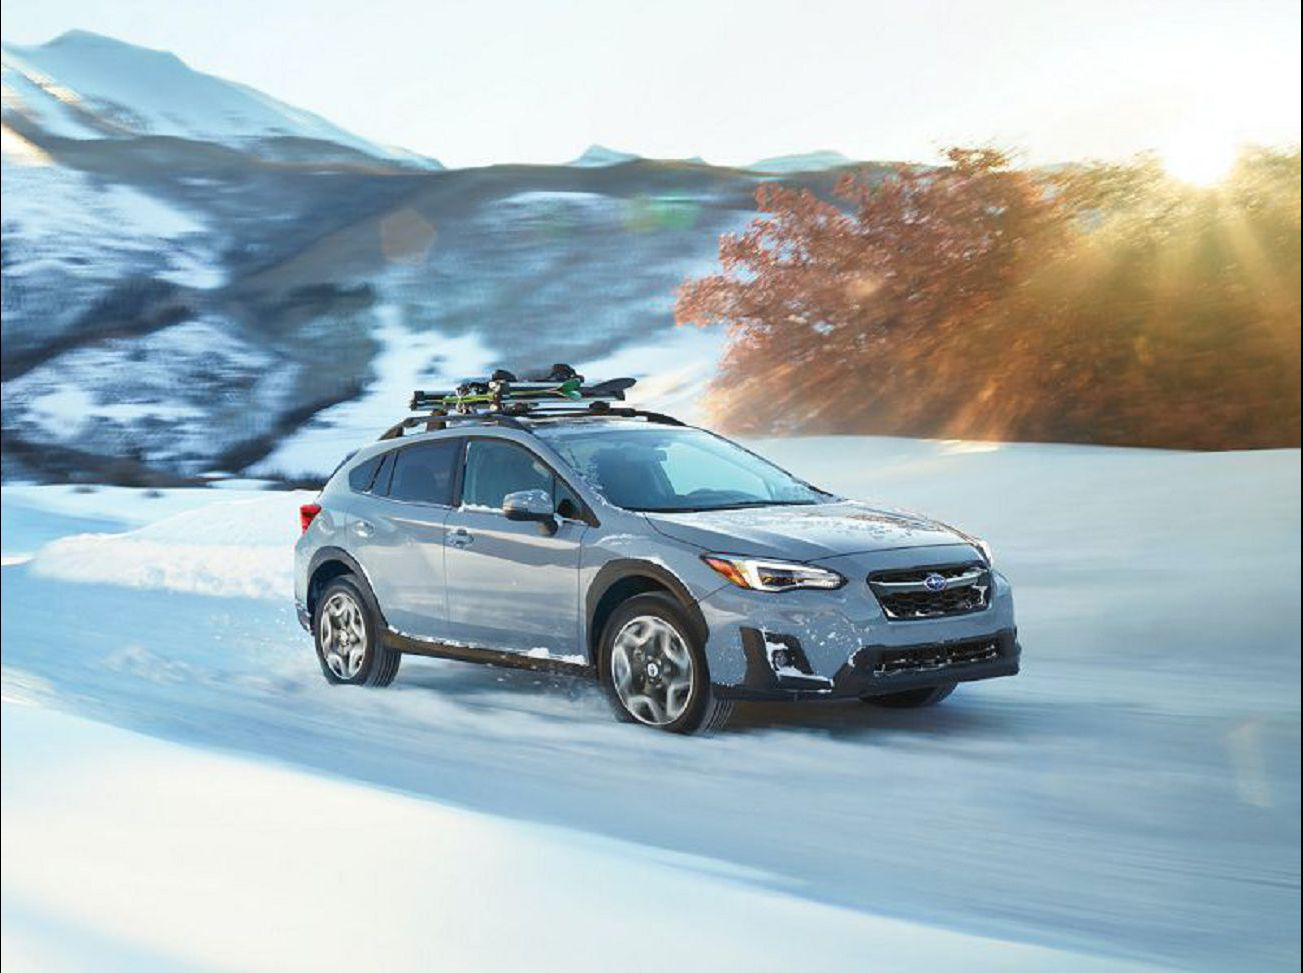 2021 Subaru Forester 2019 Specs Trim Dimensions 2014 Accessories